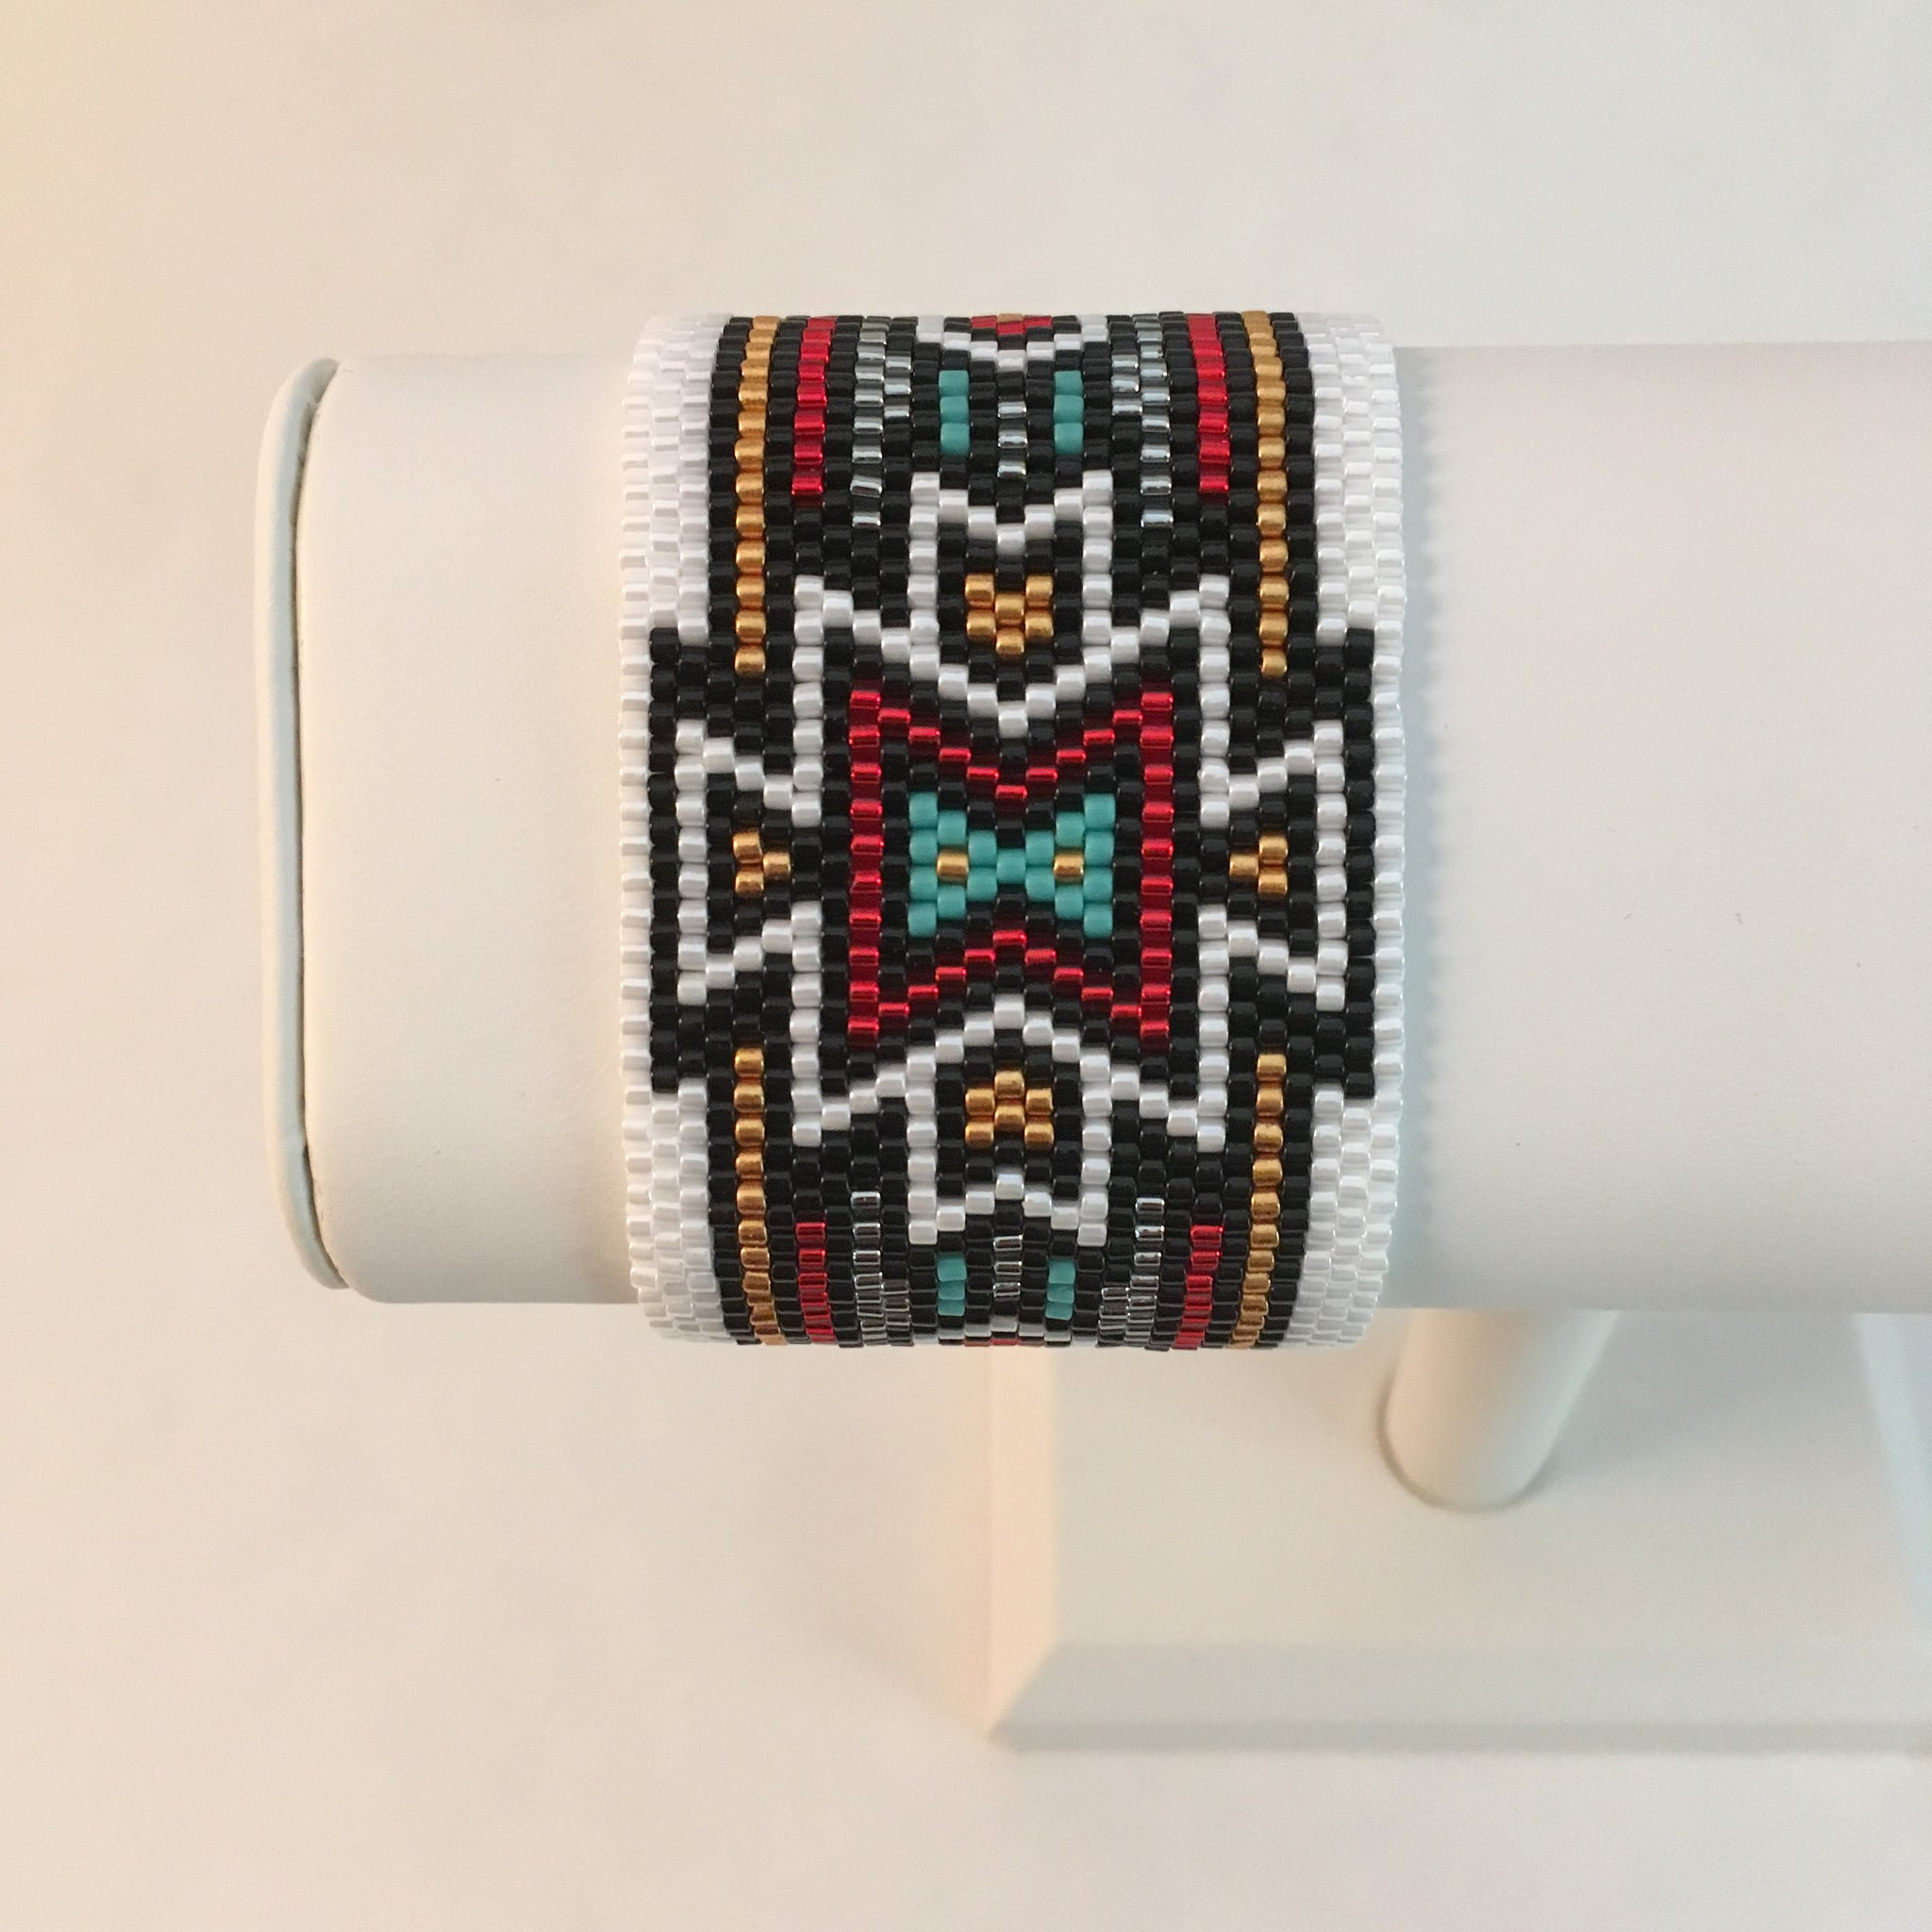 Southwest Style in White, Black, Red, Gold and Turquoise